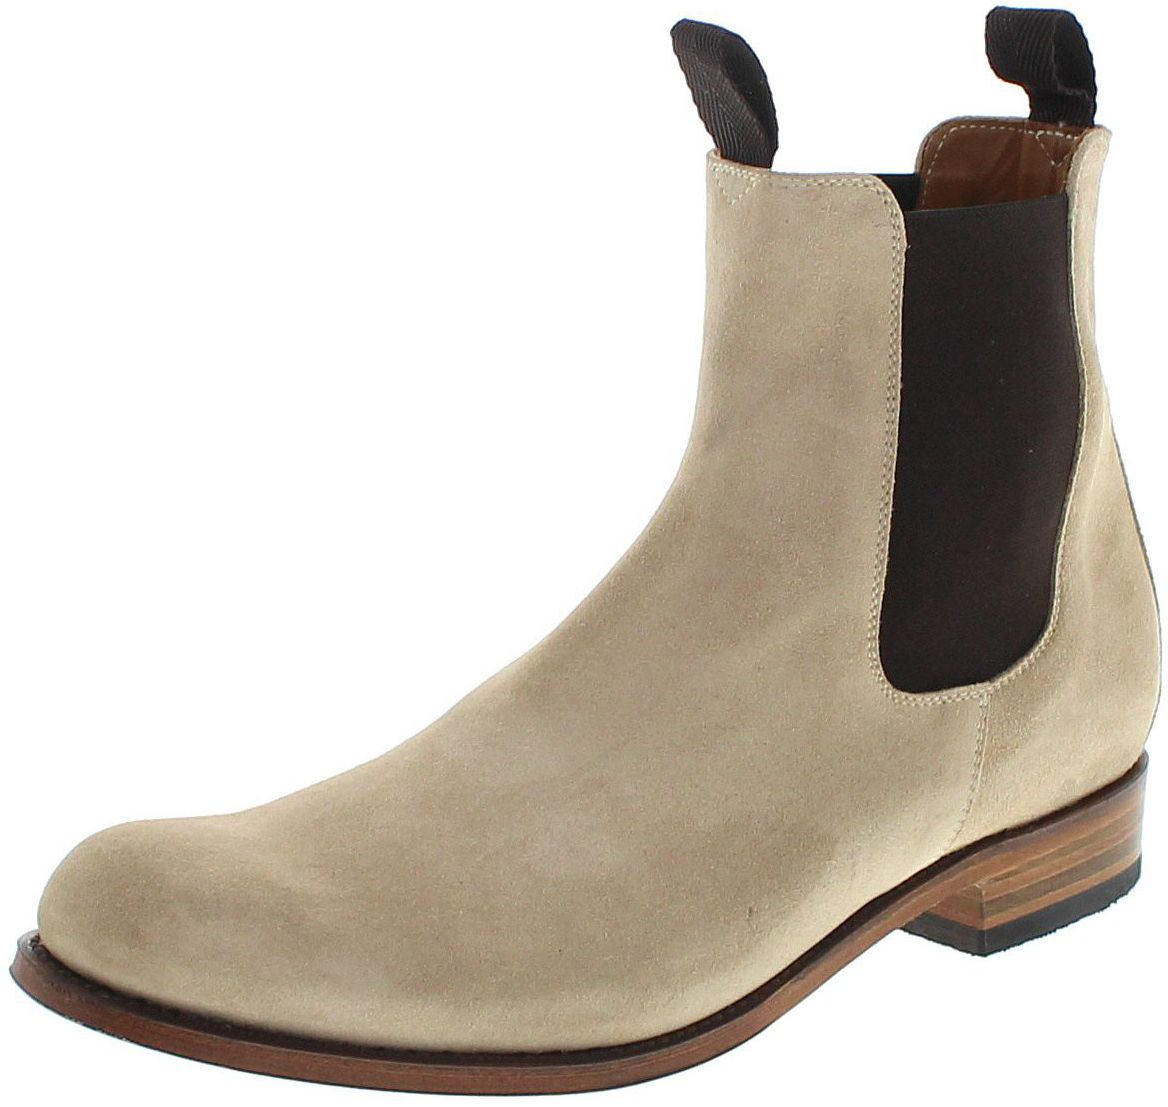 Sendra Boots 5595 Bamby Firenze Mens Chelsea Boots - beige